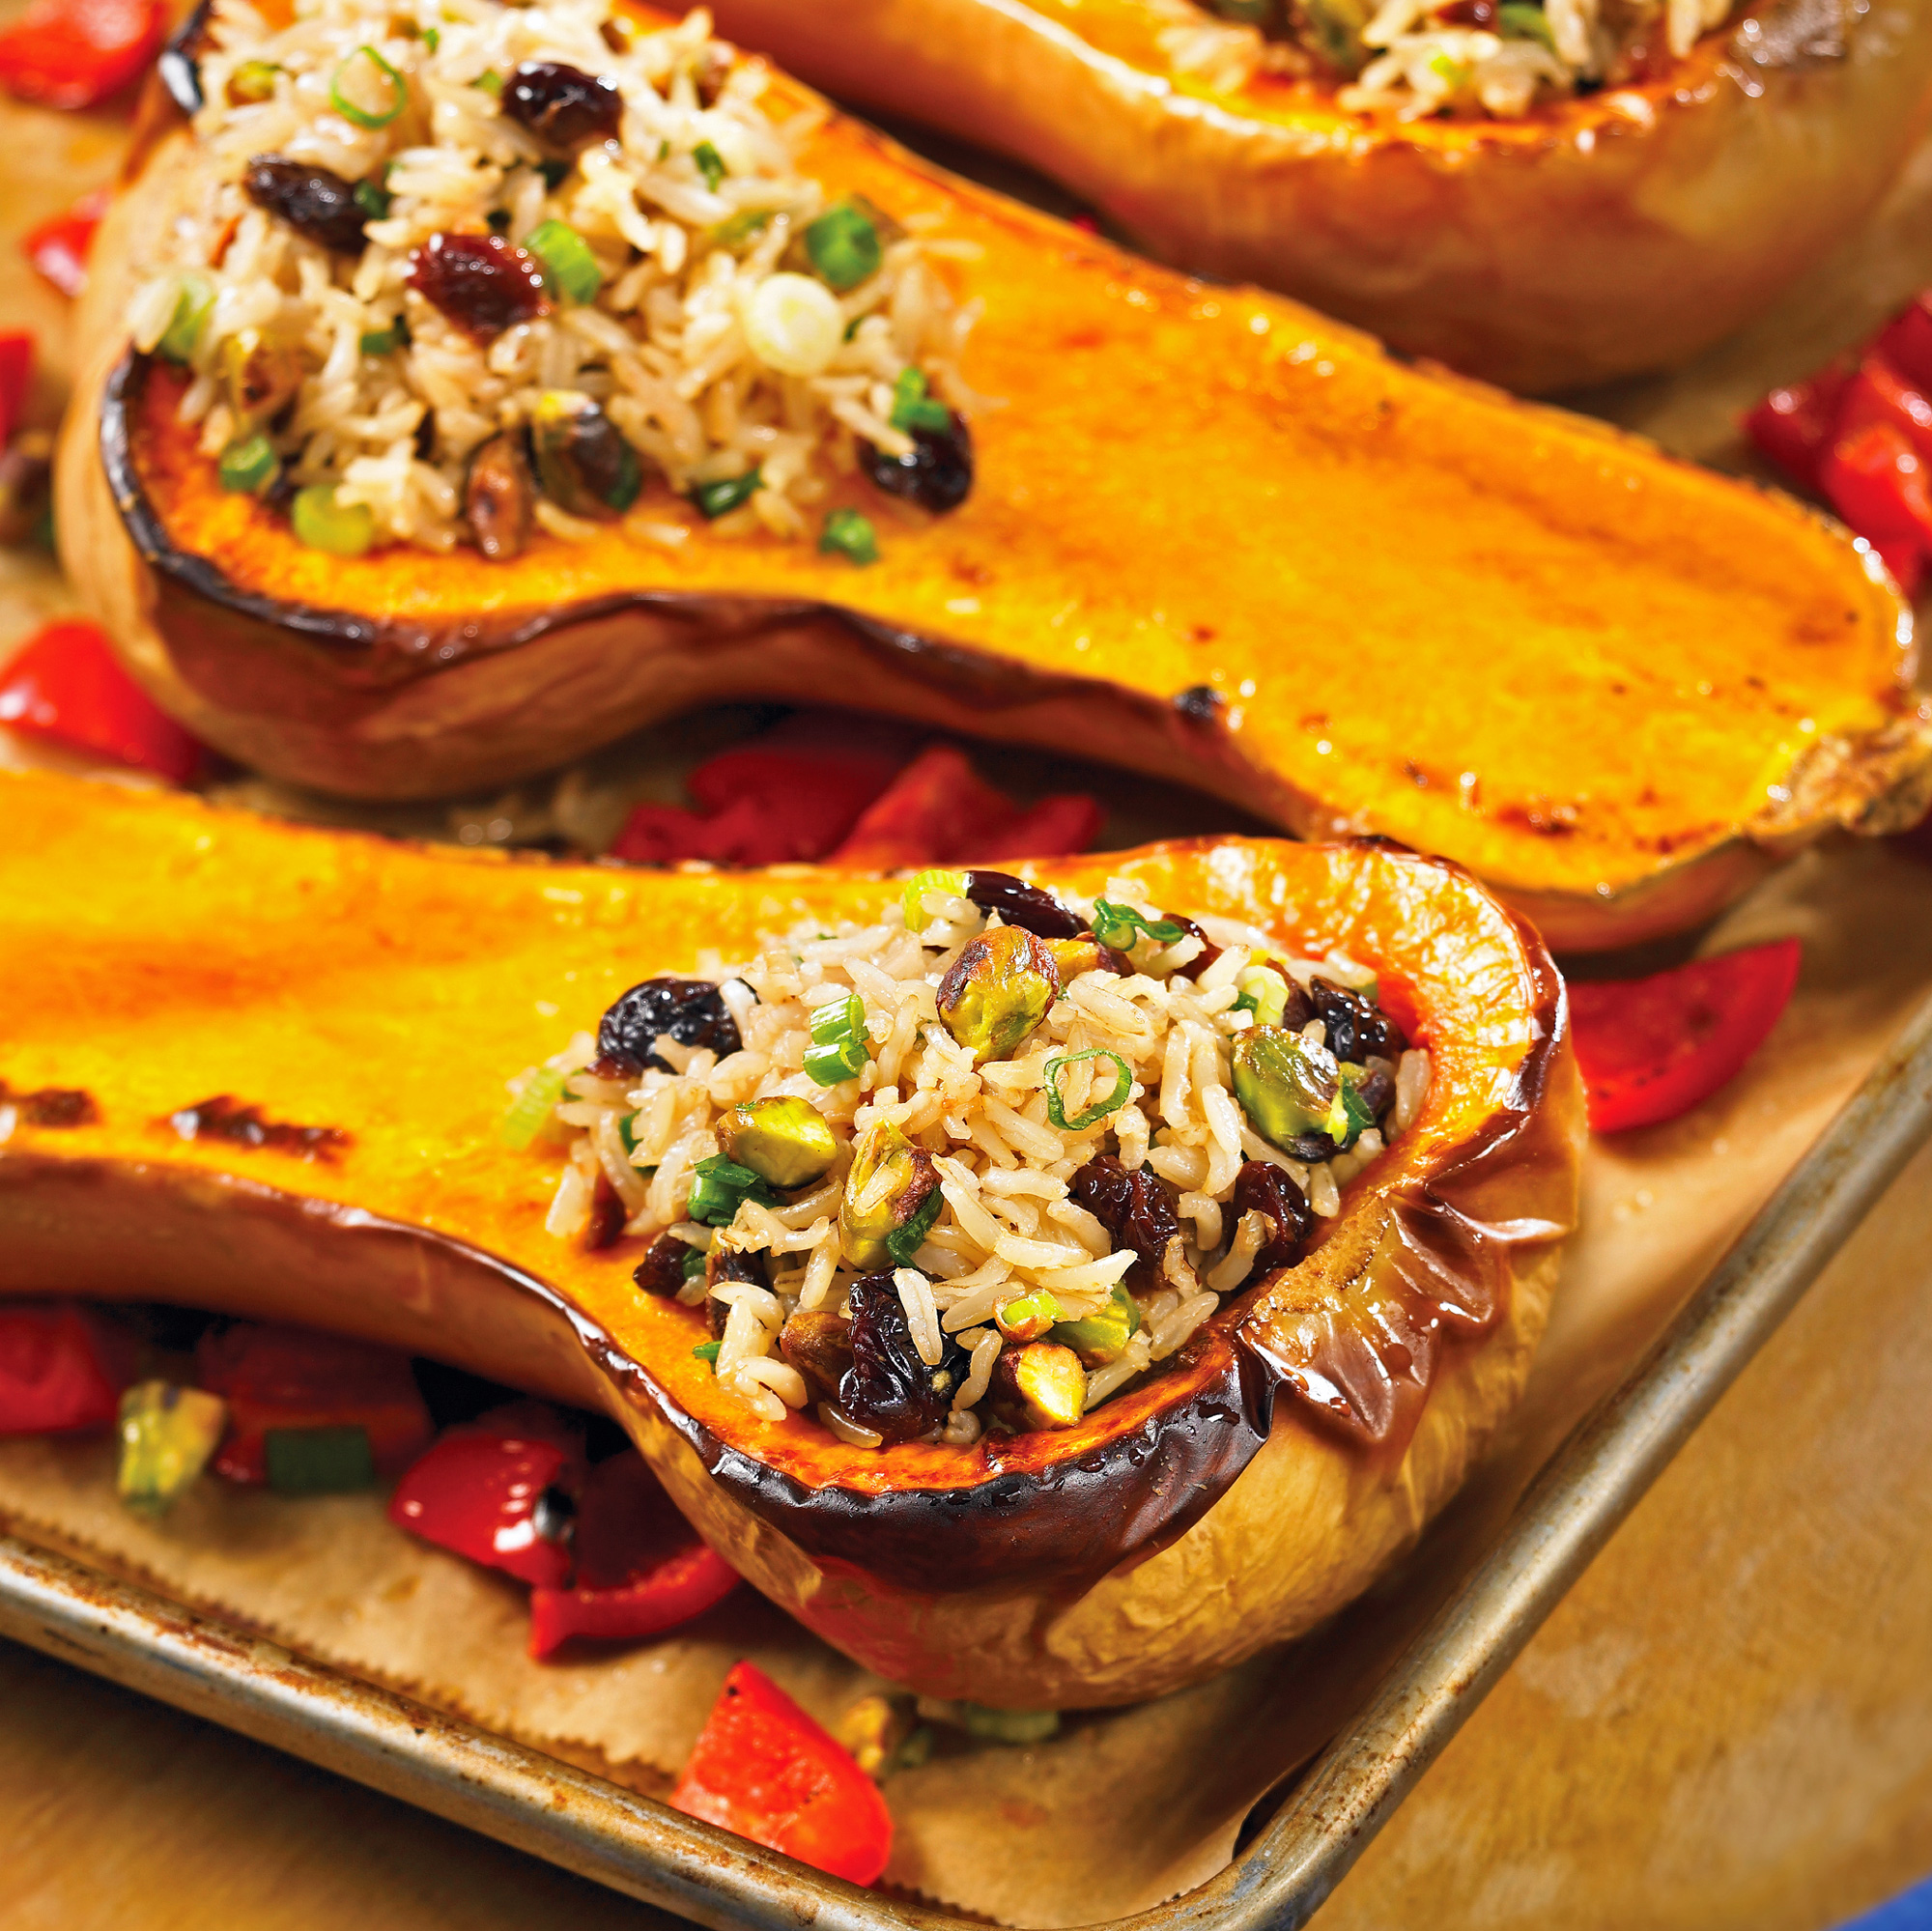 Savory stuffing of brown rice, dried cherries, and nuts lifts butternut squash to a new level.